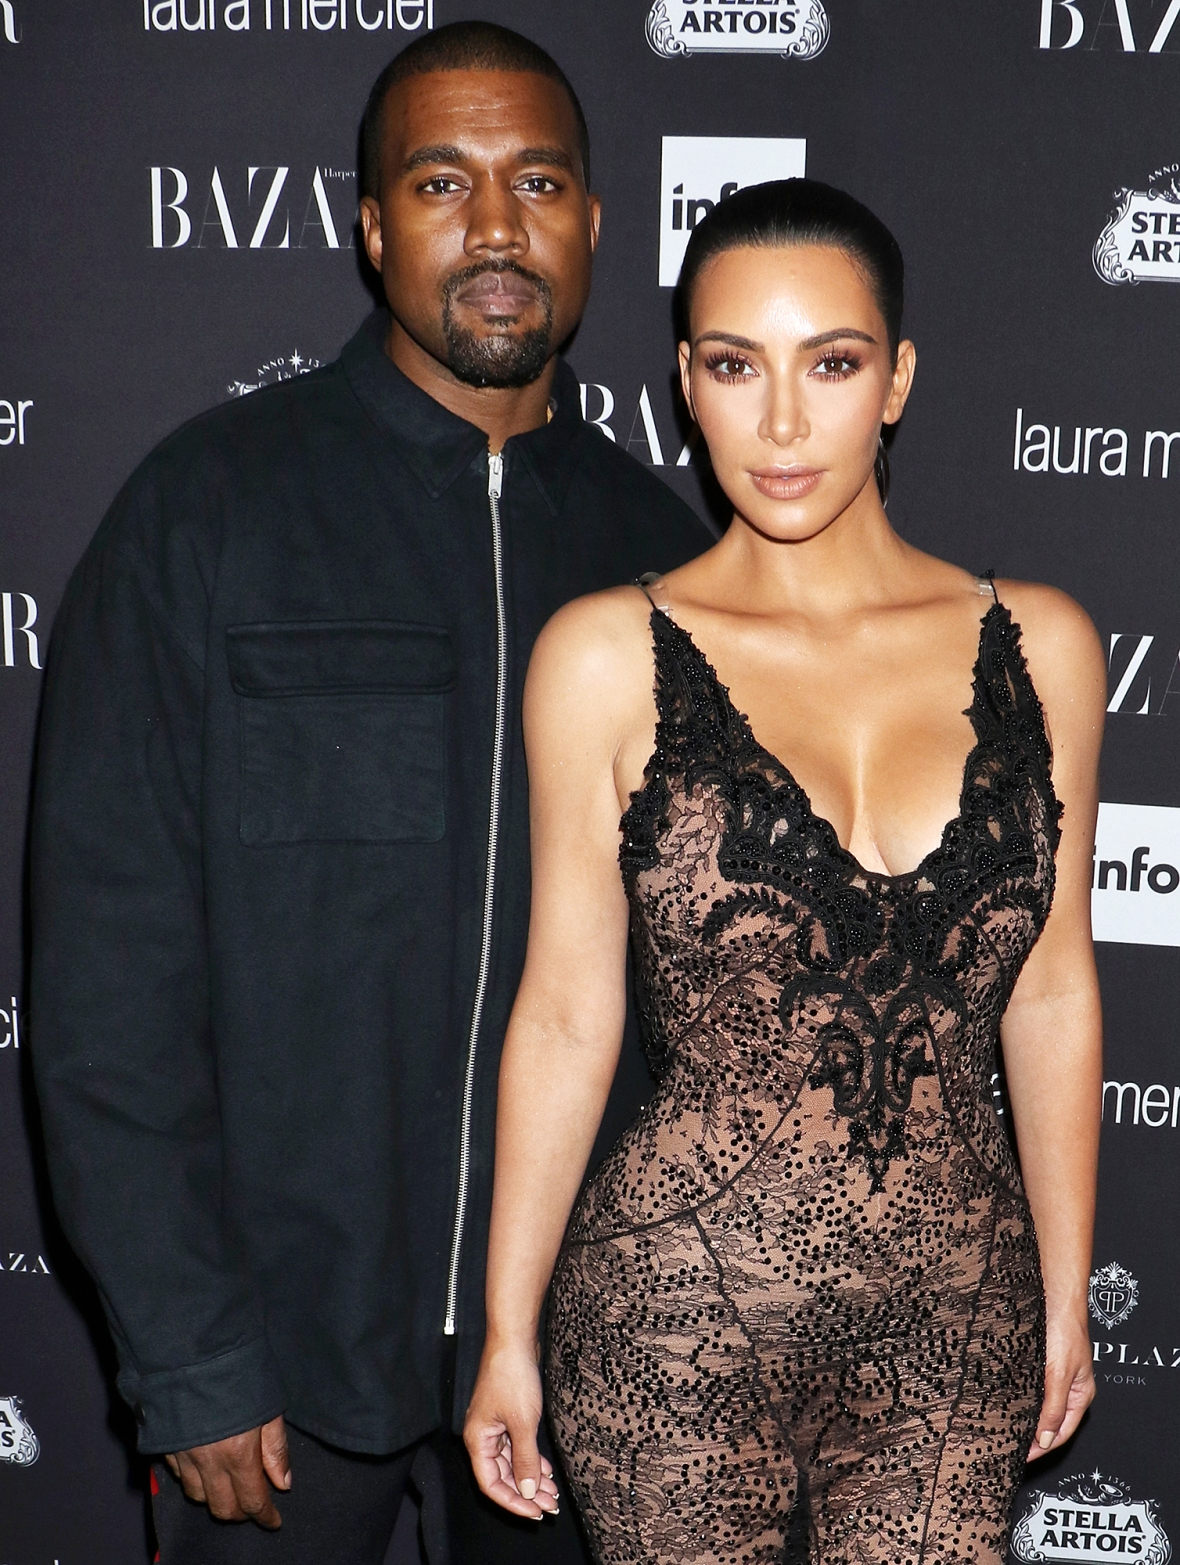 Kim Kardashian Former Nanny Wants See Her With Man Wholl Let Her Be Her